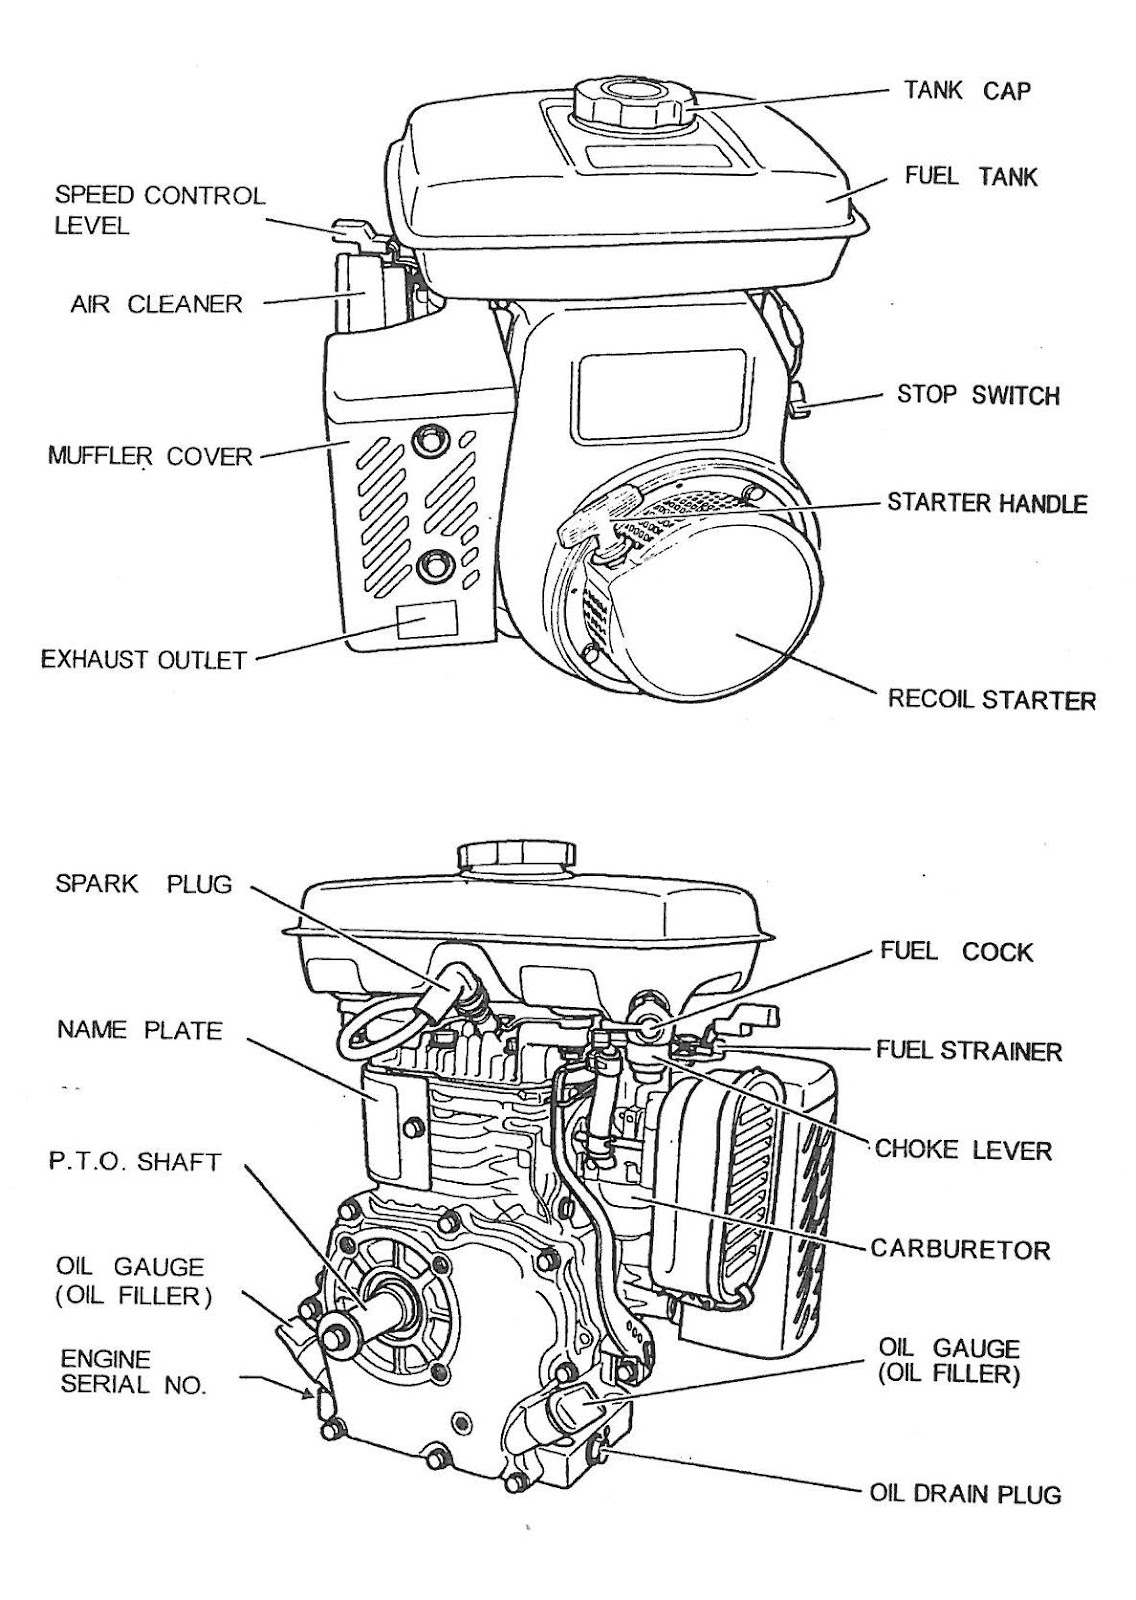 small resolution of robin subaru engine diagram wiring library rh 59 codingcommunity de ezgo robin engine parts diagram ezgo robin engine wiring diagram